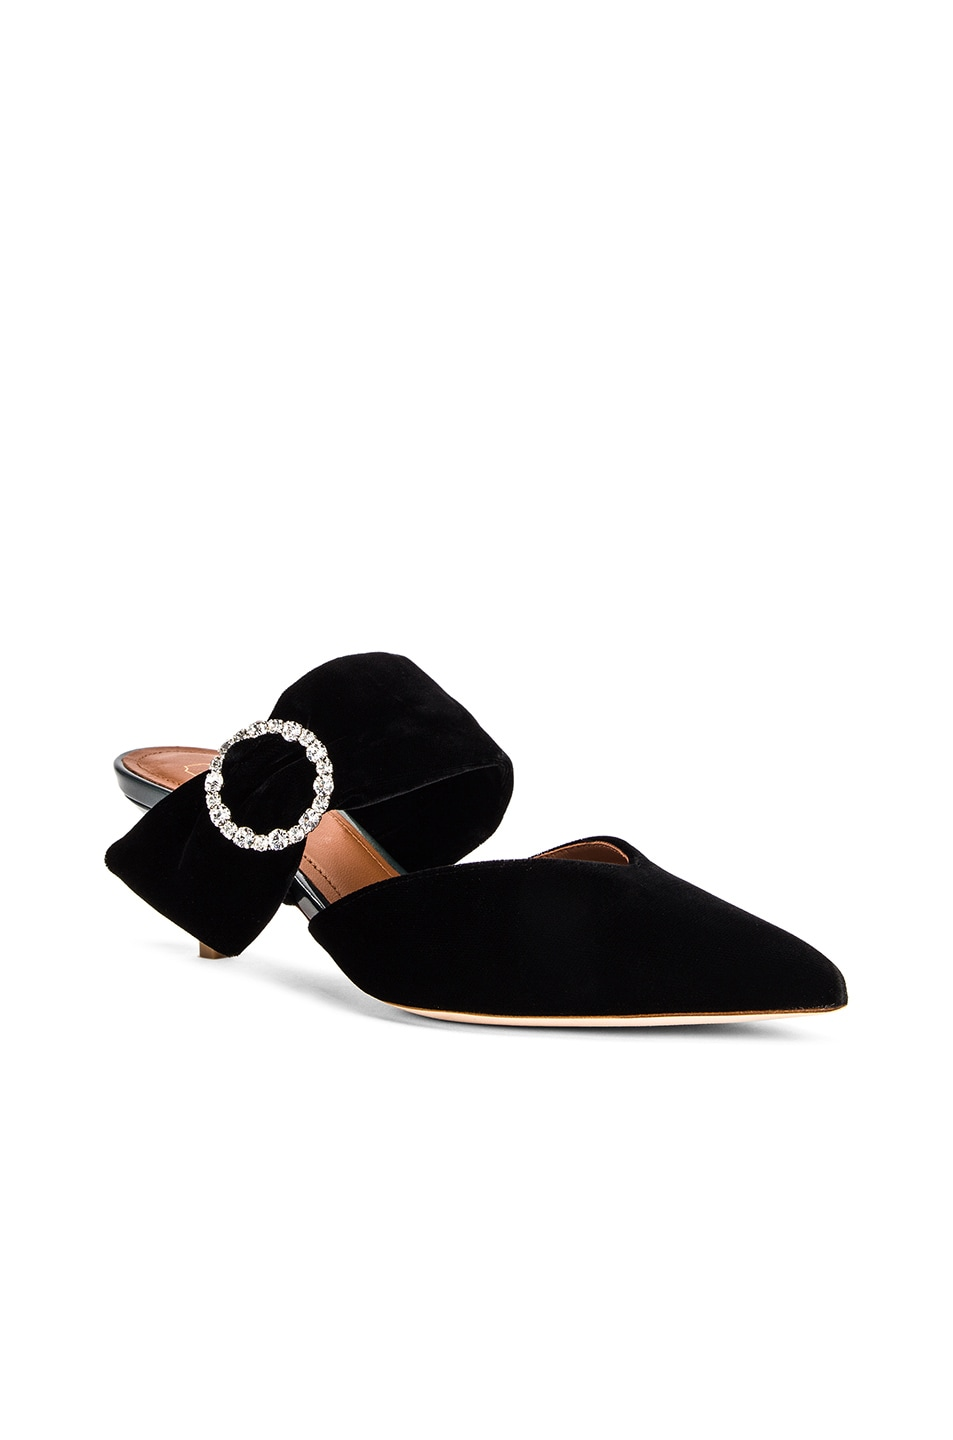 Image 2 of Malone Souliers Maite Crystal MS 45 Heel in Black